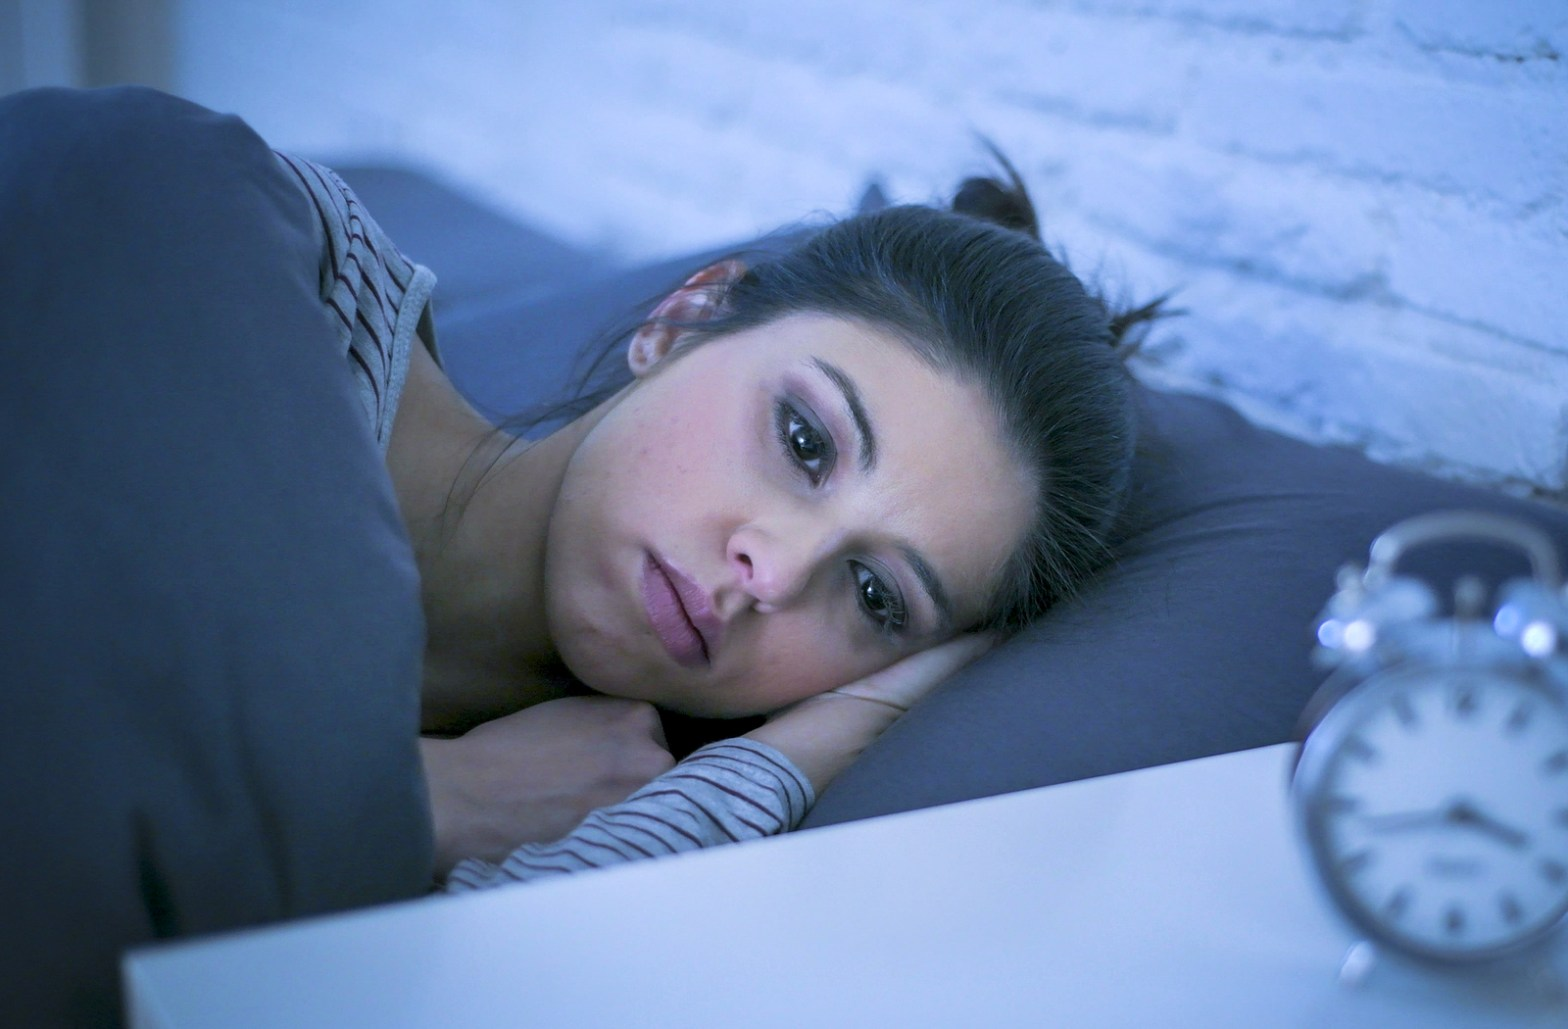 A woman with a blank stare lays in bed. This could represent anxiety related insomnia. Anxiety treatment in Orange County, CA can provide support. Contact an anxiety therapist to learn more about anxiety treatment for teens in Orange County, CA.